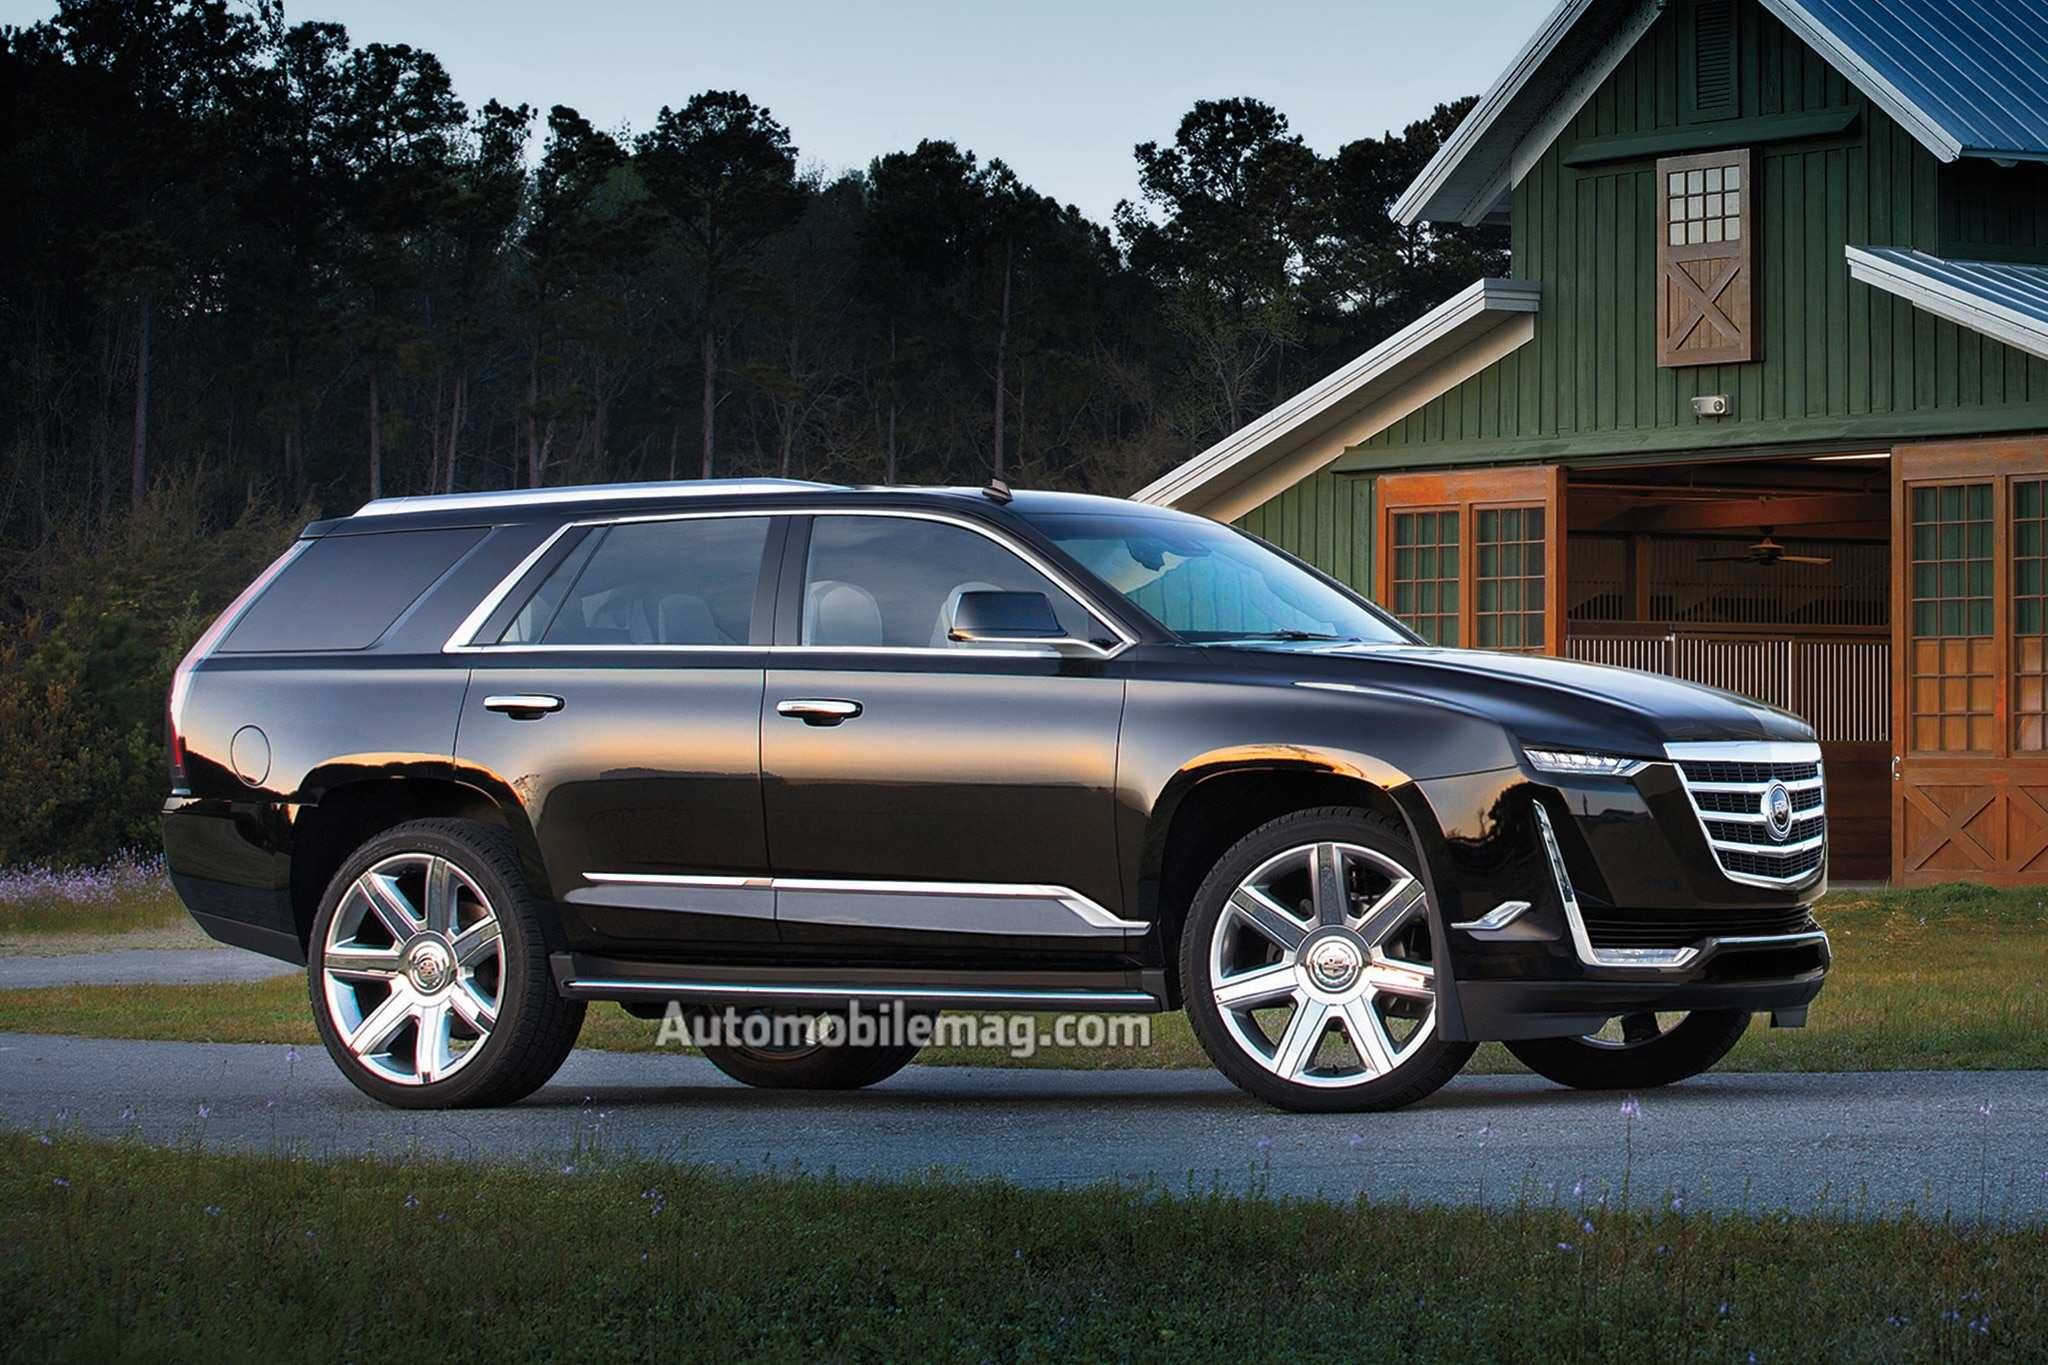 52 New New 2019 Cadillac Escalade Build New Review Concept with New 2019 Cadillac Escalade Build New Review